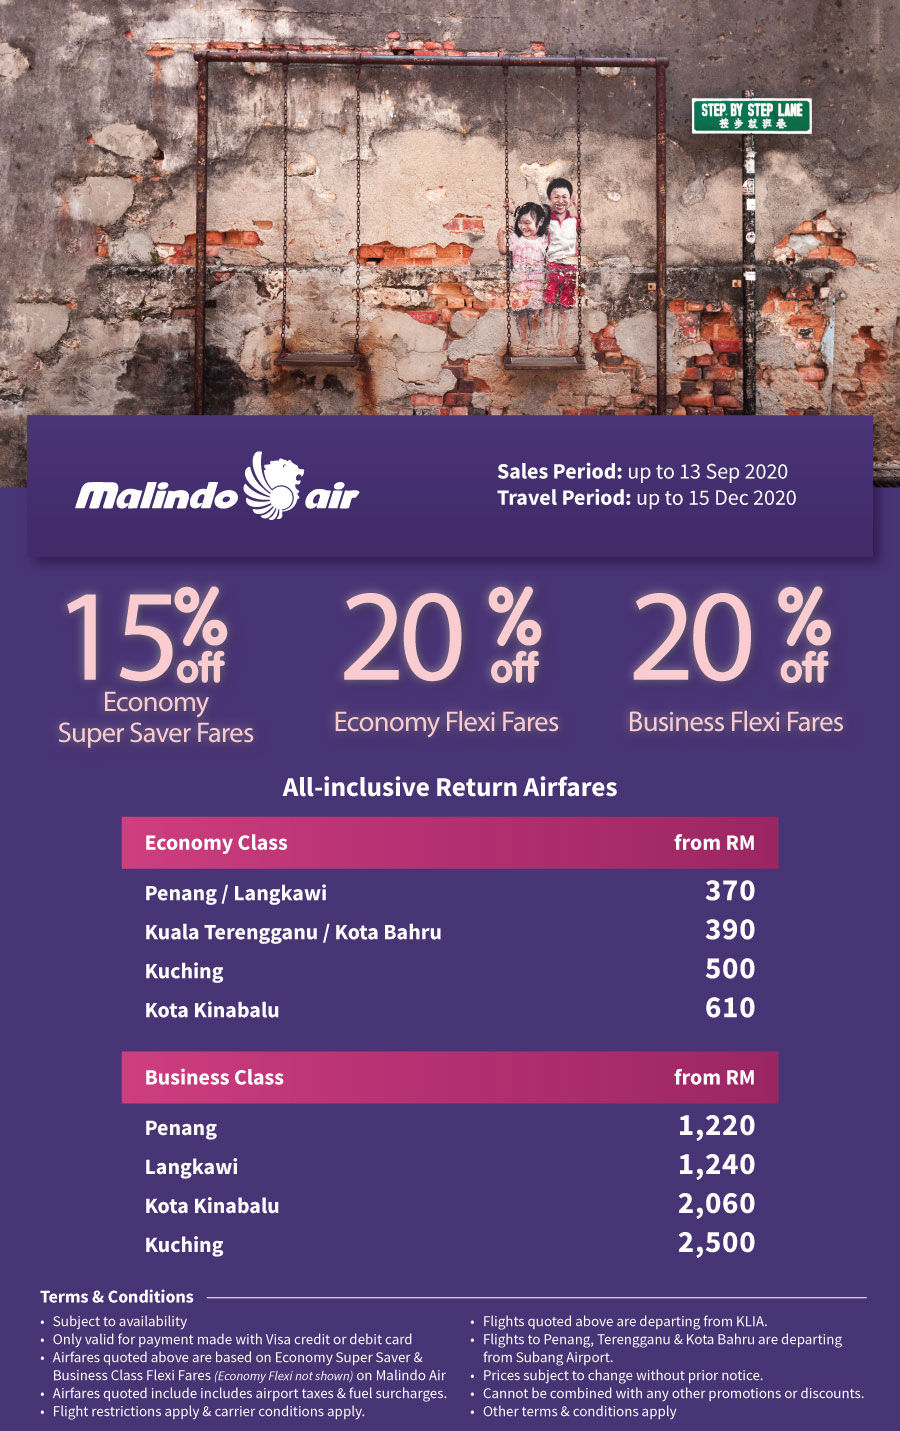 Travel locally with Malindo Air for your next getaway! EDM OD